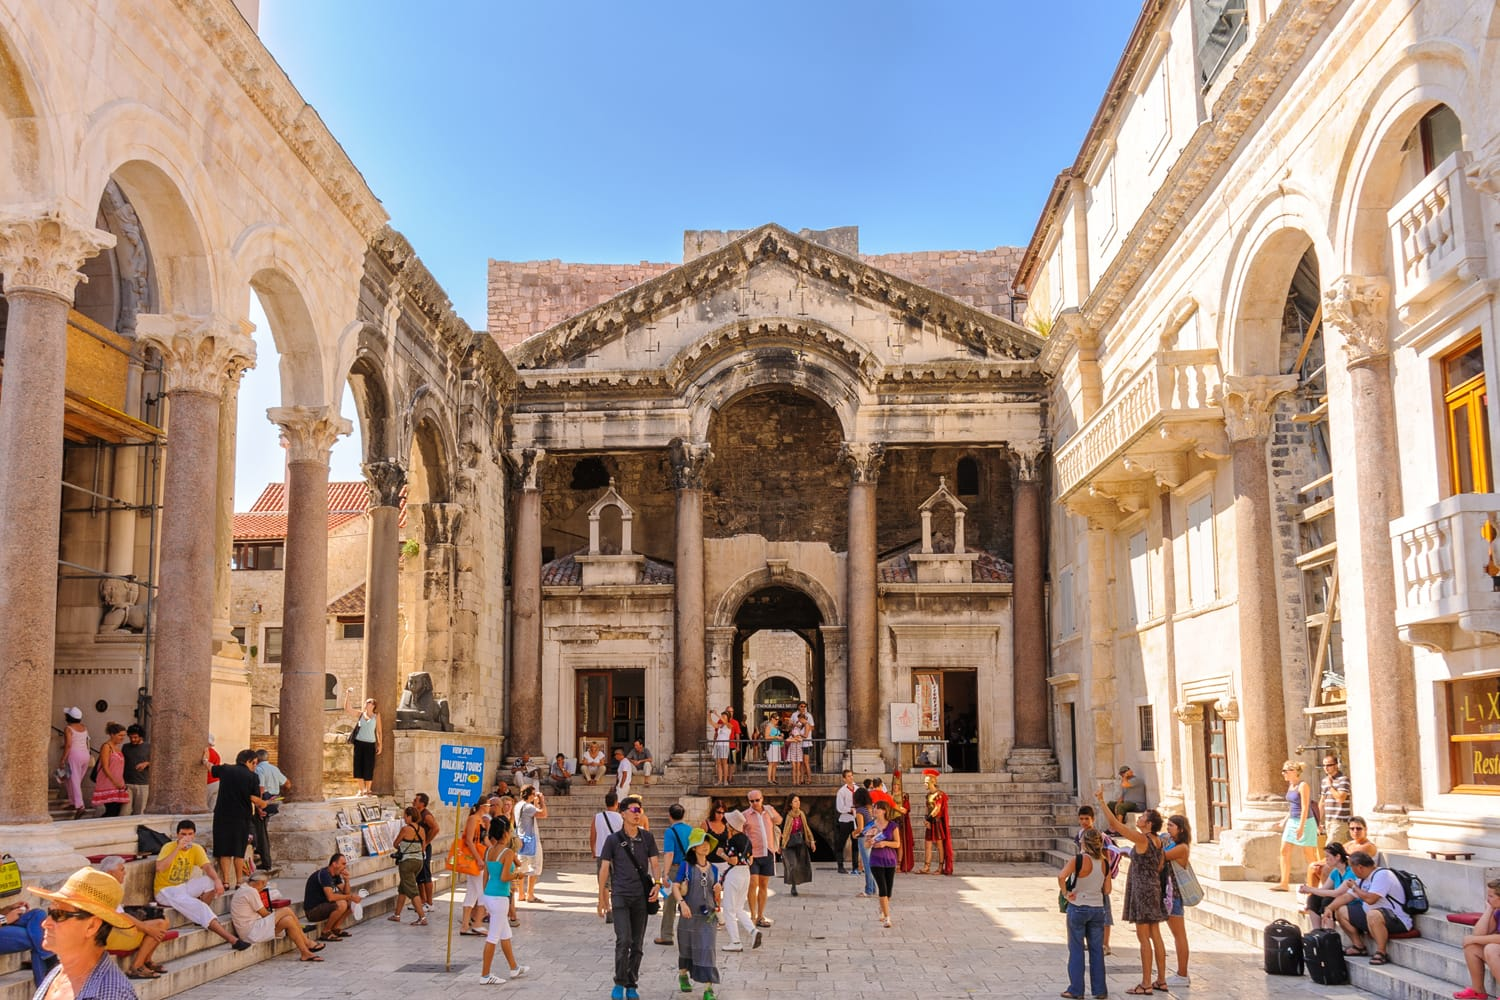 Prothyron and Peristyle at the Diocletian Palace at Split, Croatia